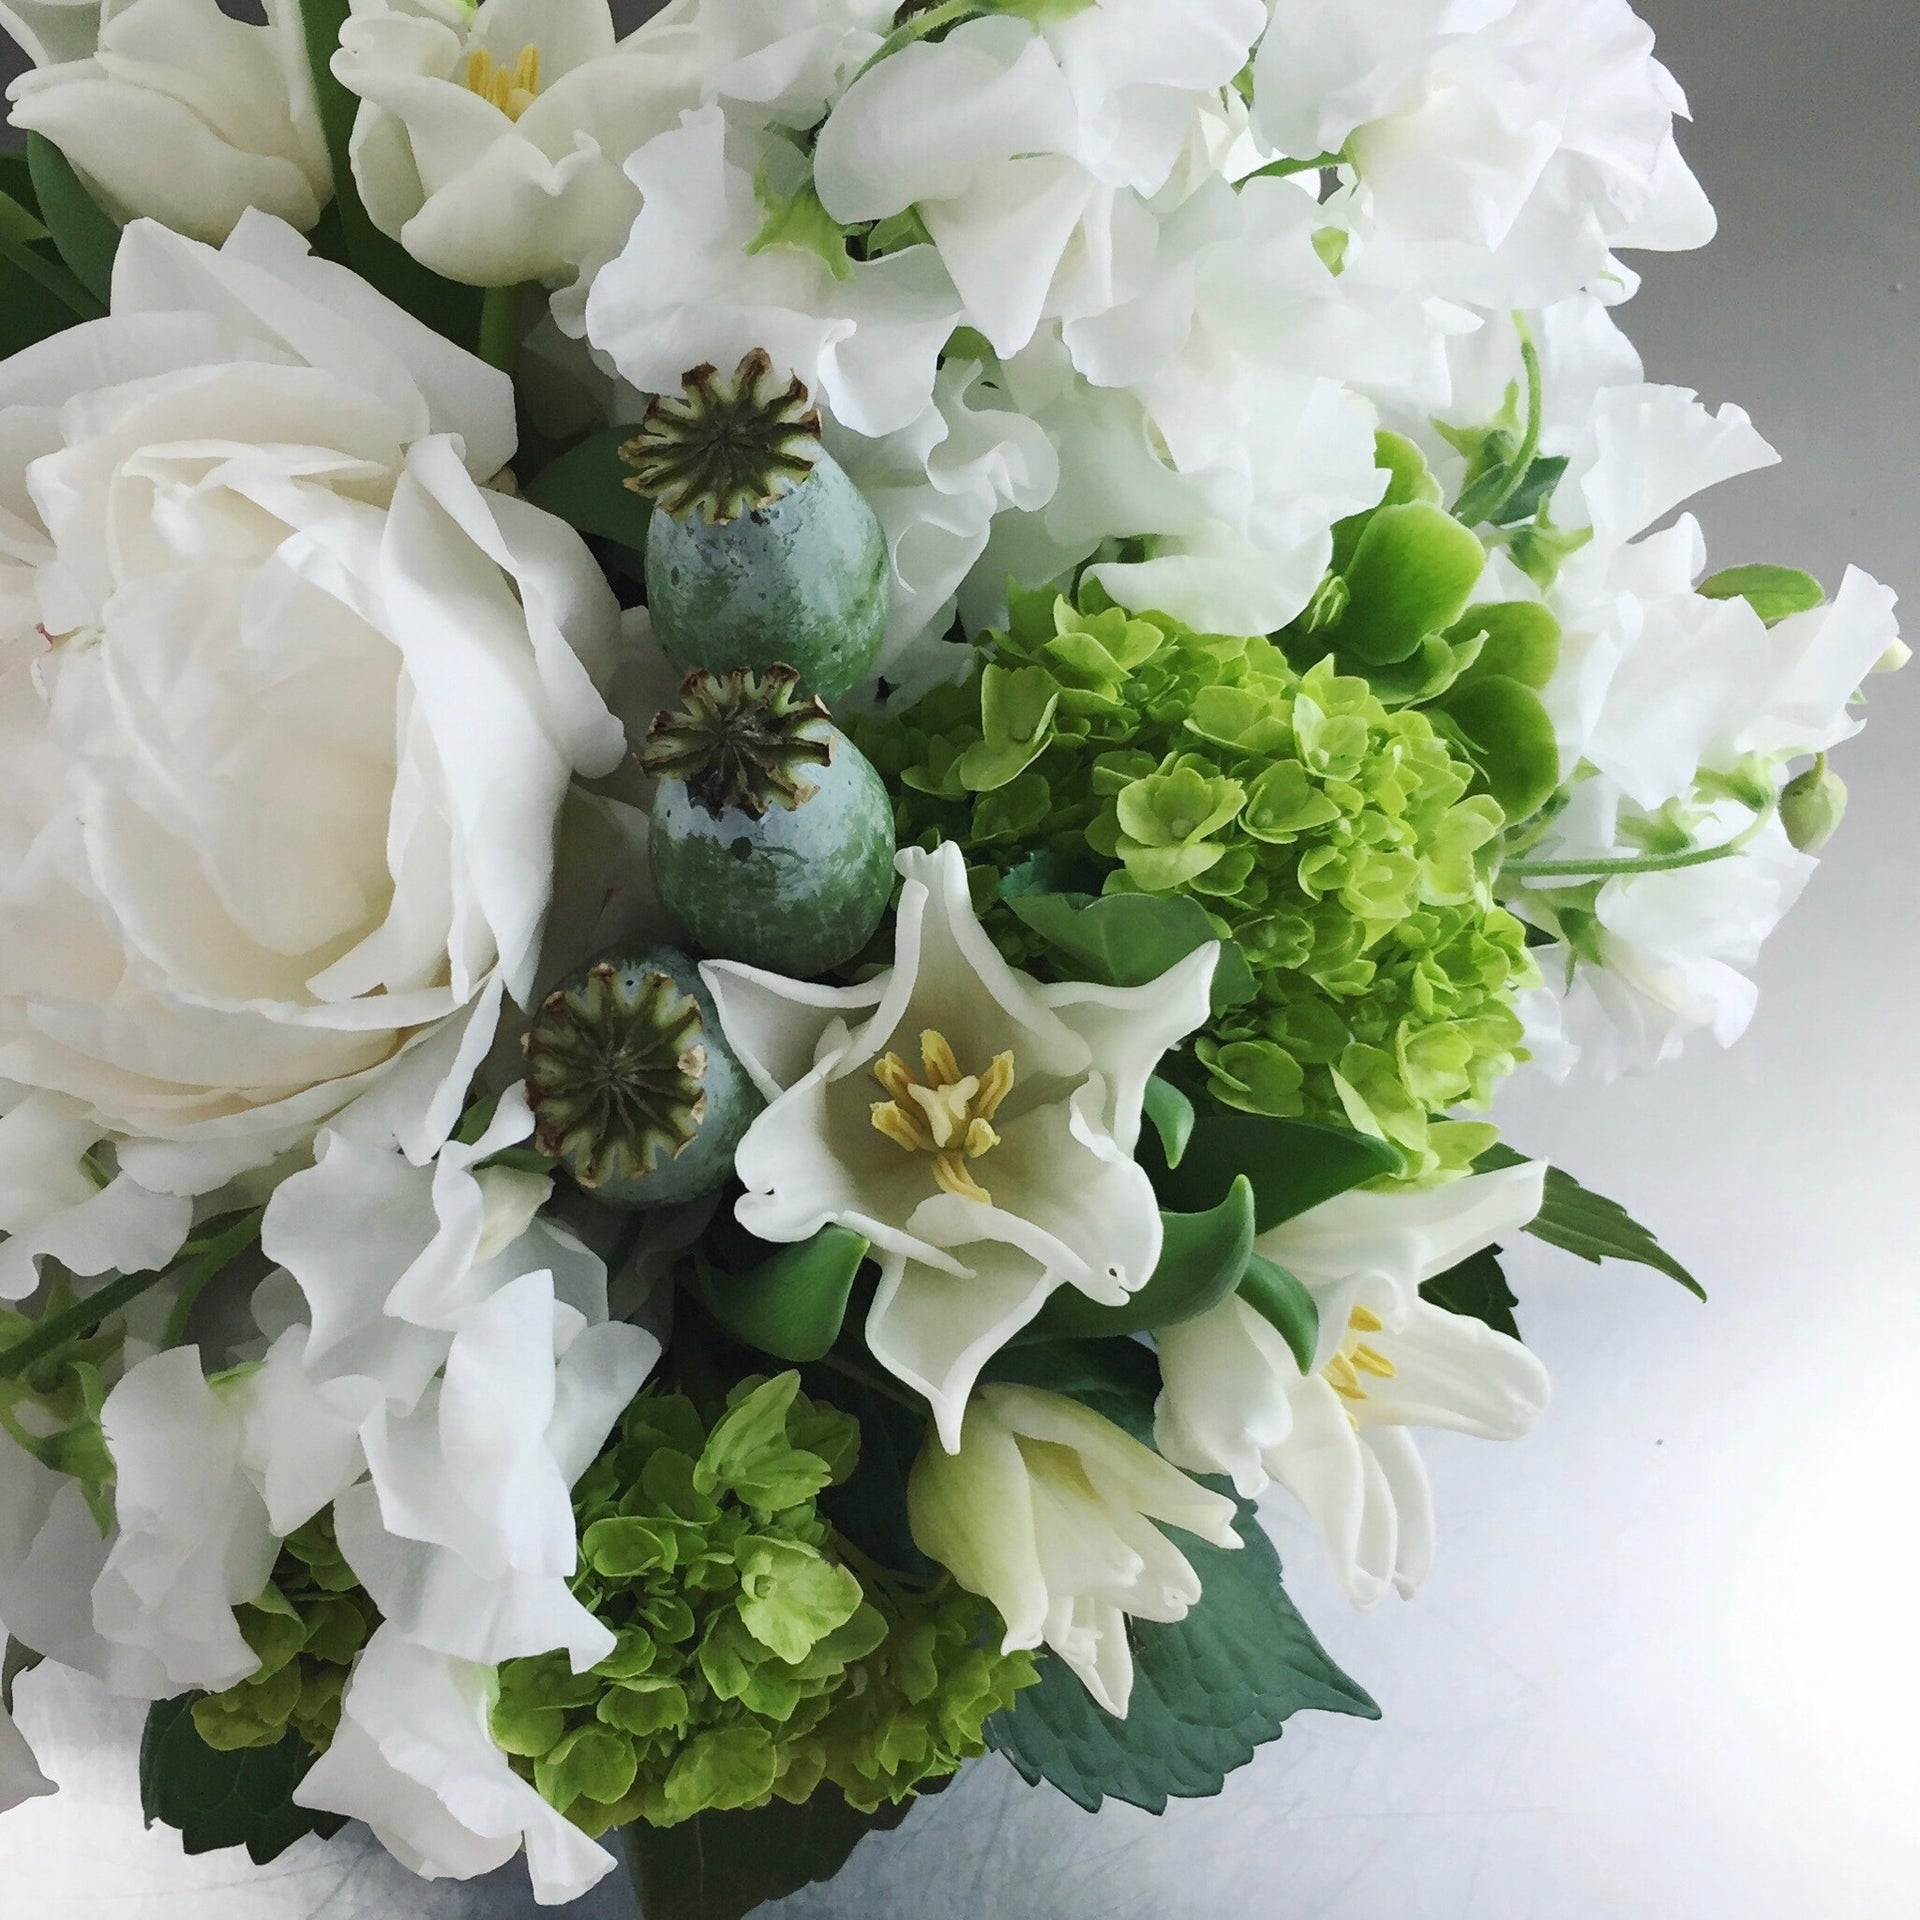 White and green arrangement of peonies, poppy pods, and sweetpea.